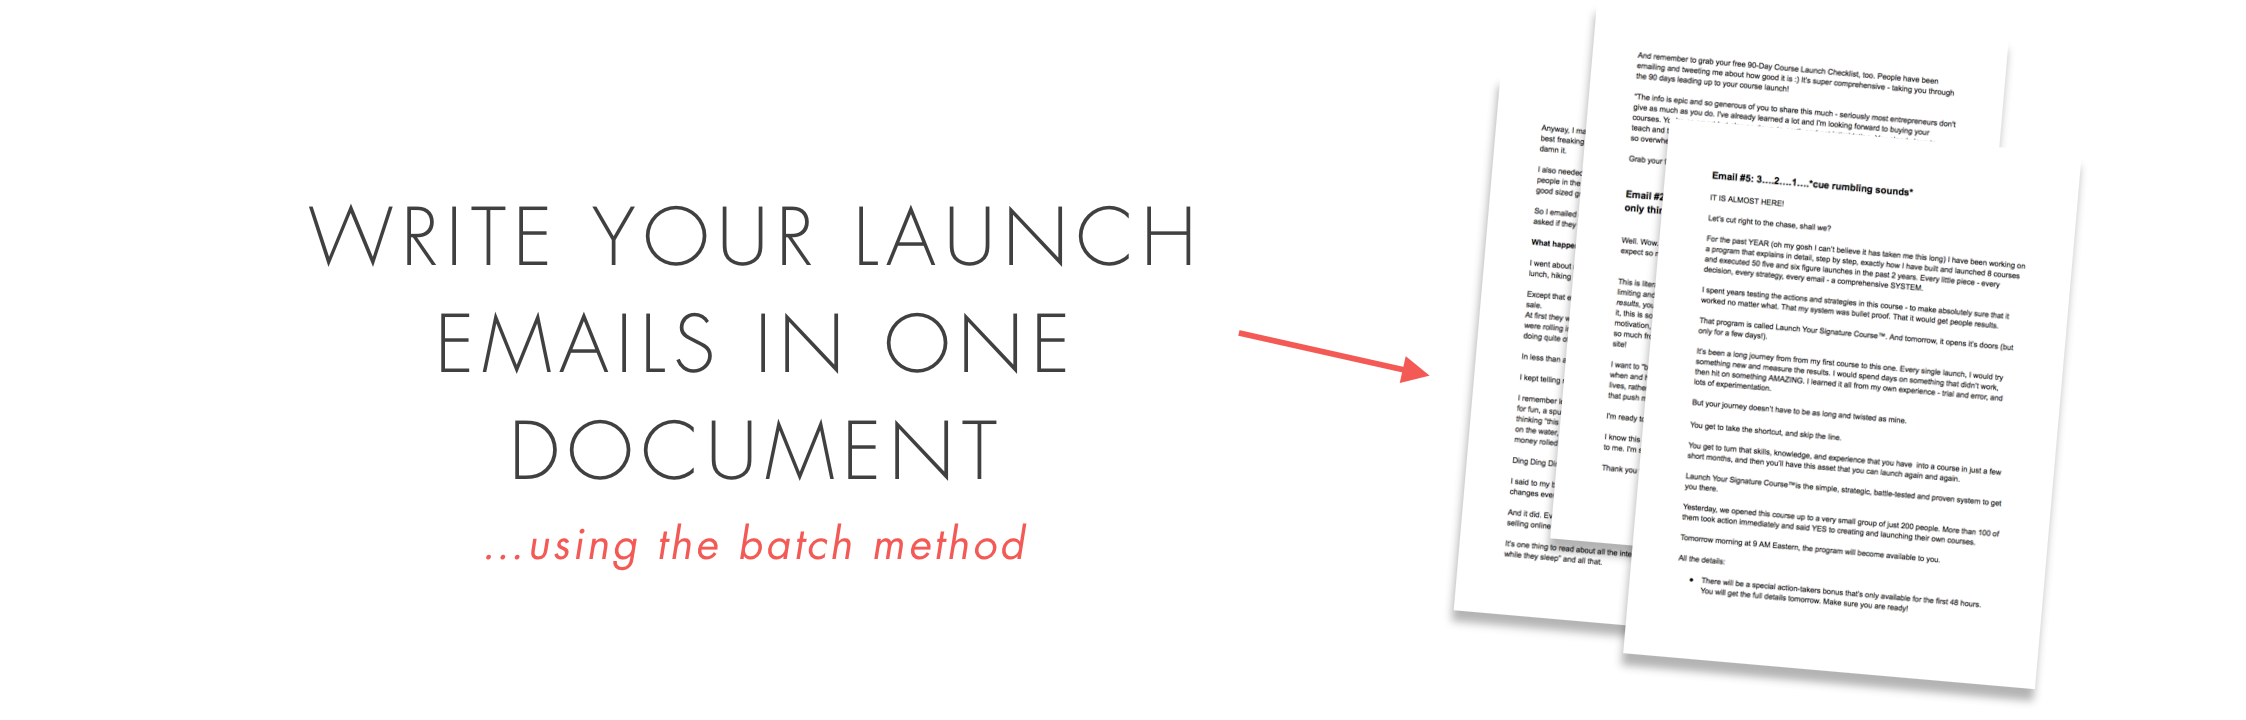 launch emails for your launch